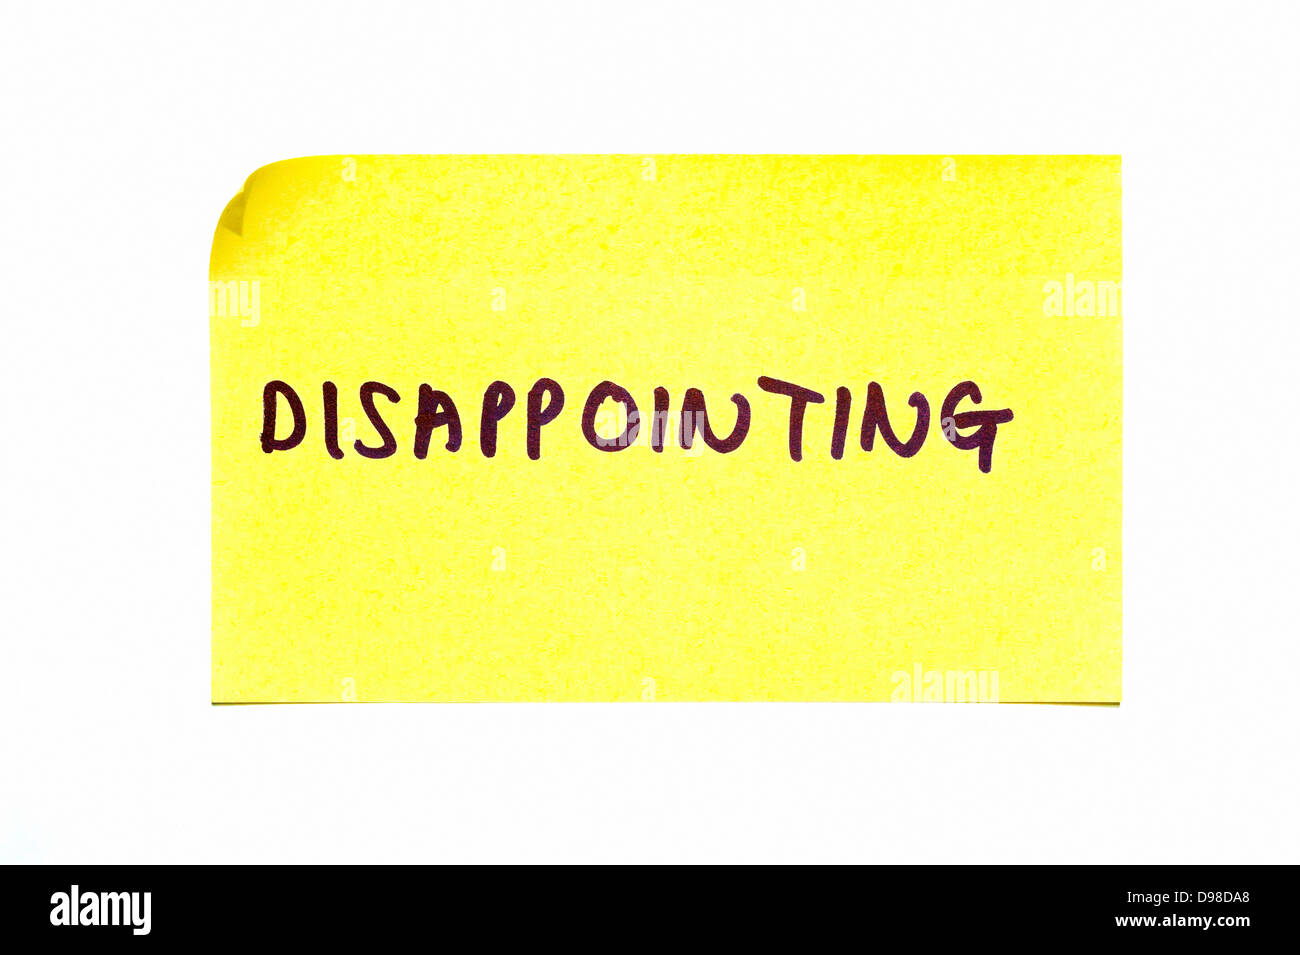 'Disappointing' written on a yellow post it note - Stock Image